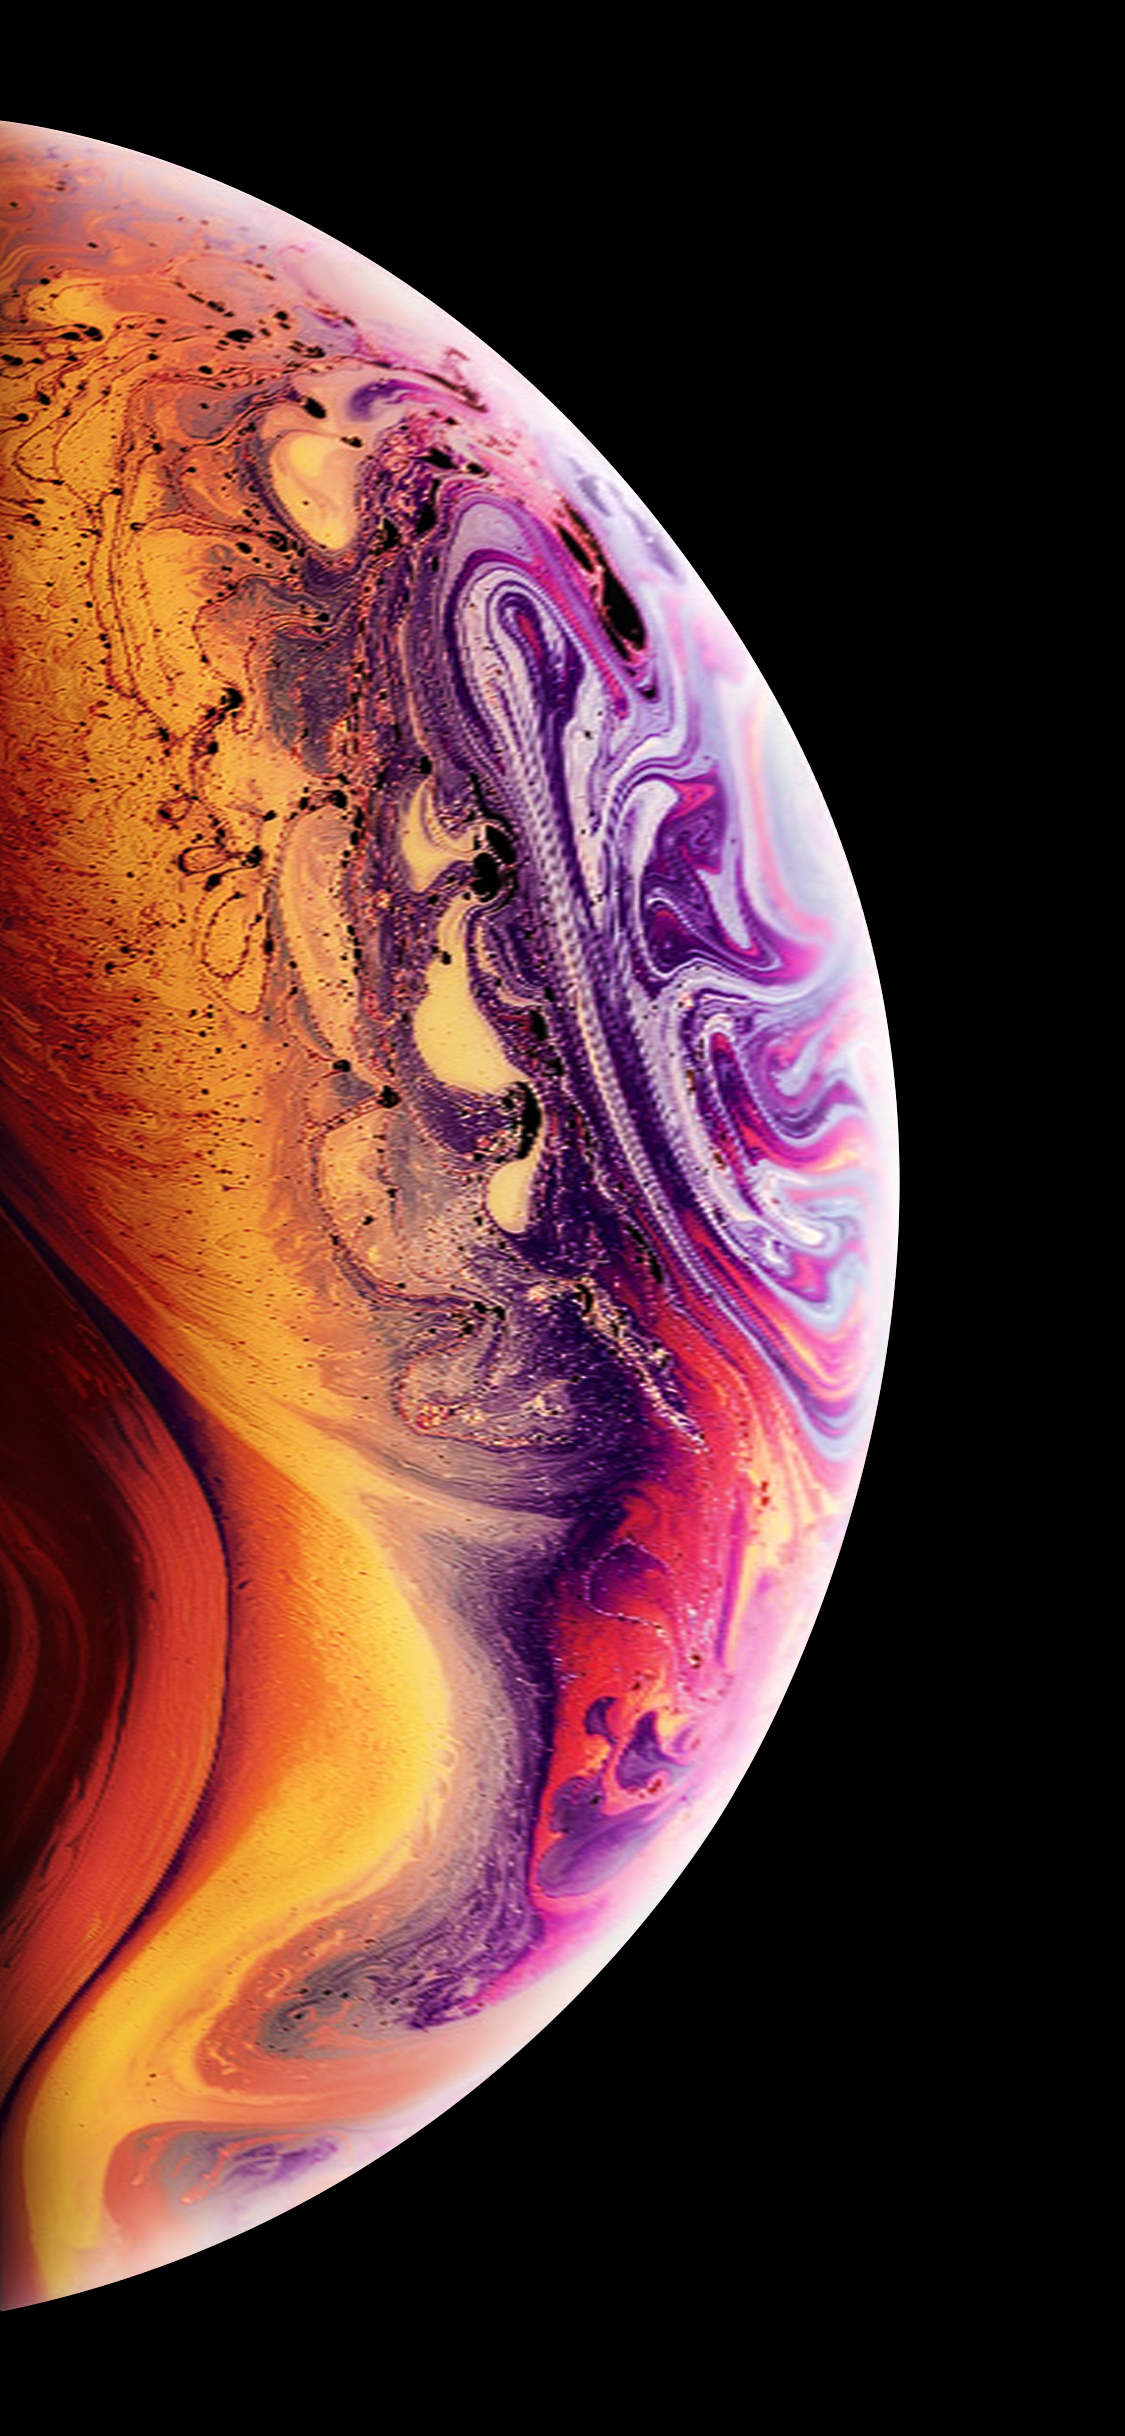 Grab The New Iphone Xs Wallpaper Right Here Cult Of Mac